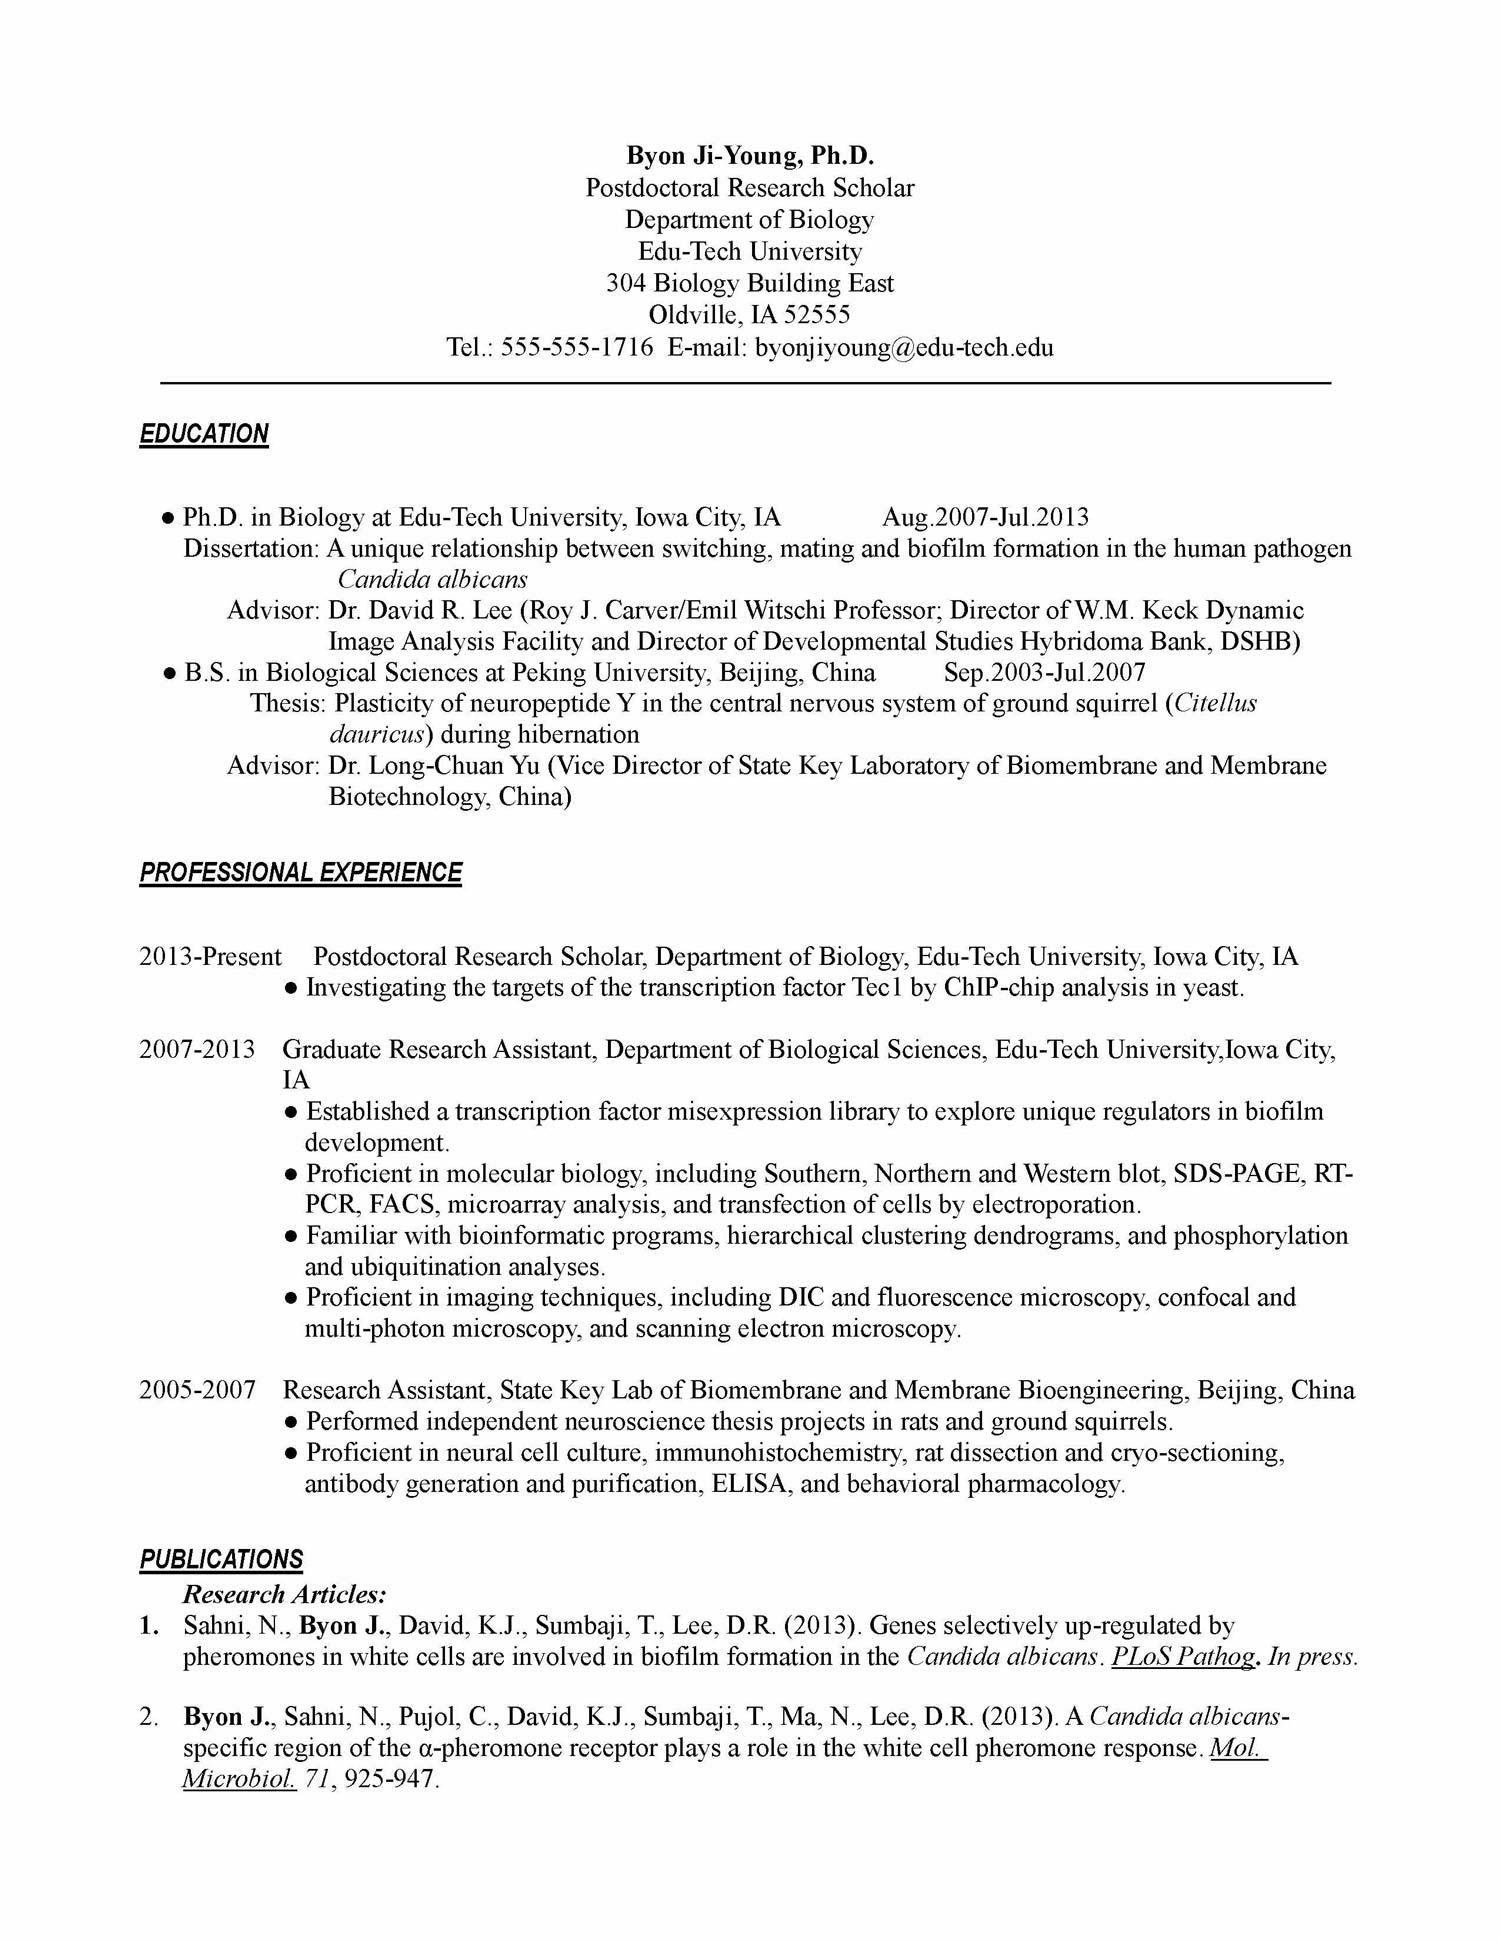 Resume Examples 2013 Resume Examples Research  Pinterest  Resume Examples Business .